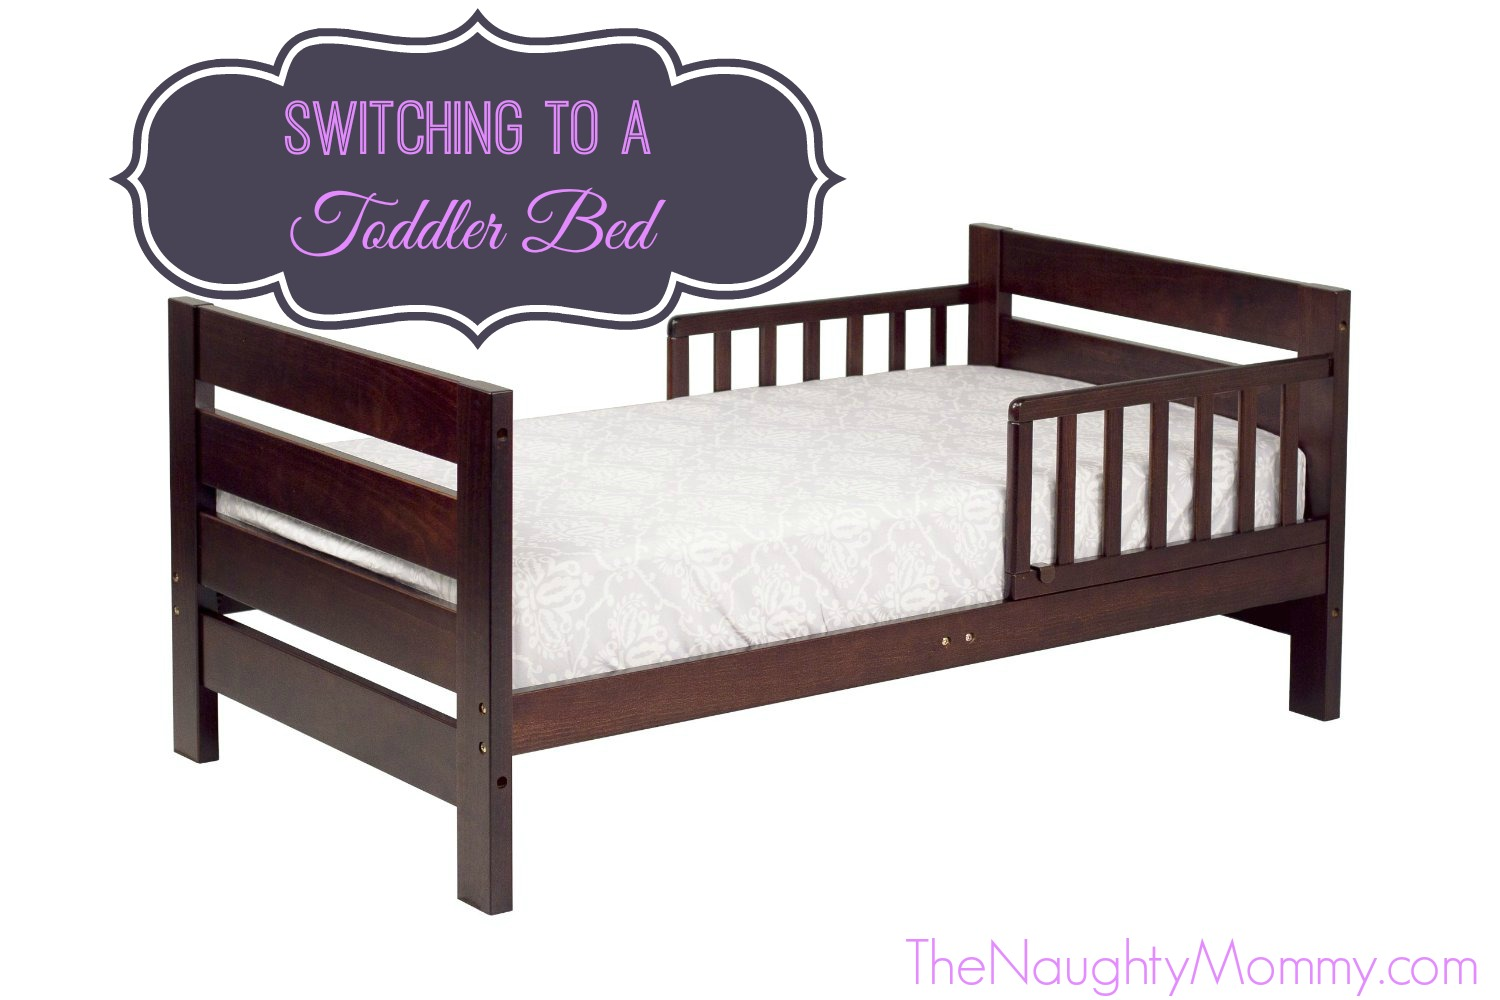 Switching to a Toddler Bed - The Naughty Mommy